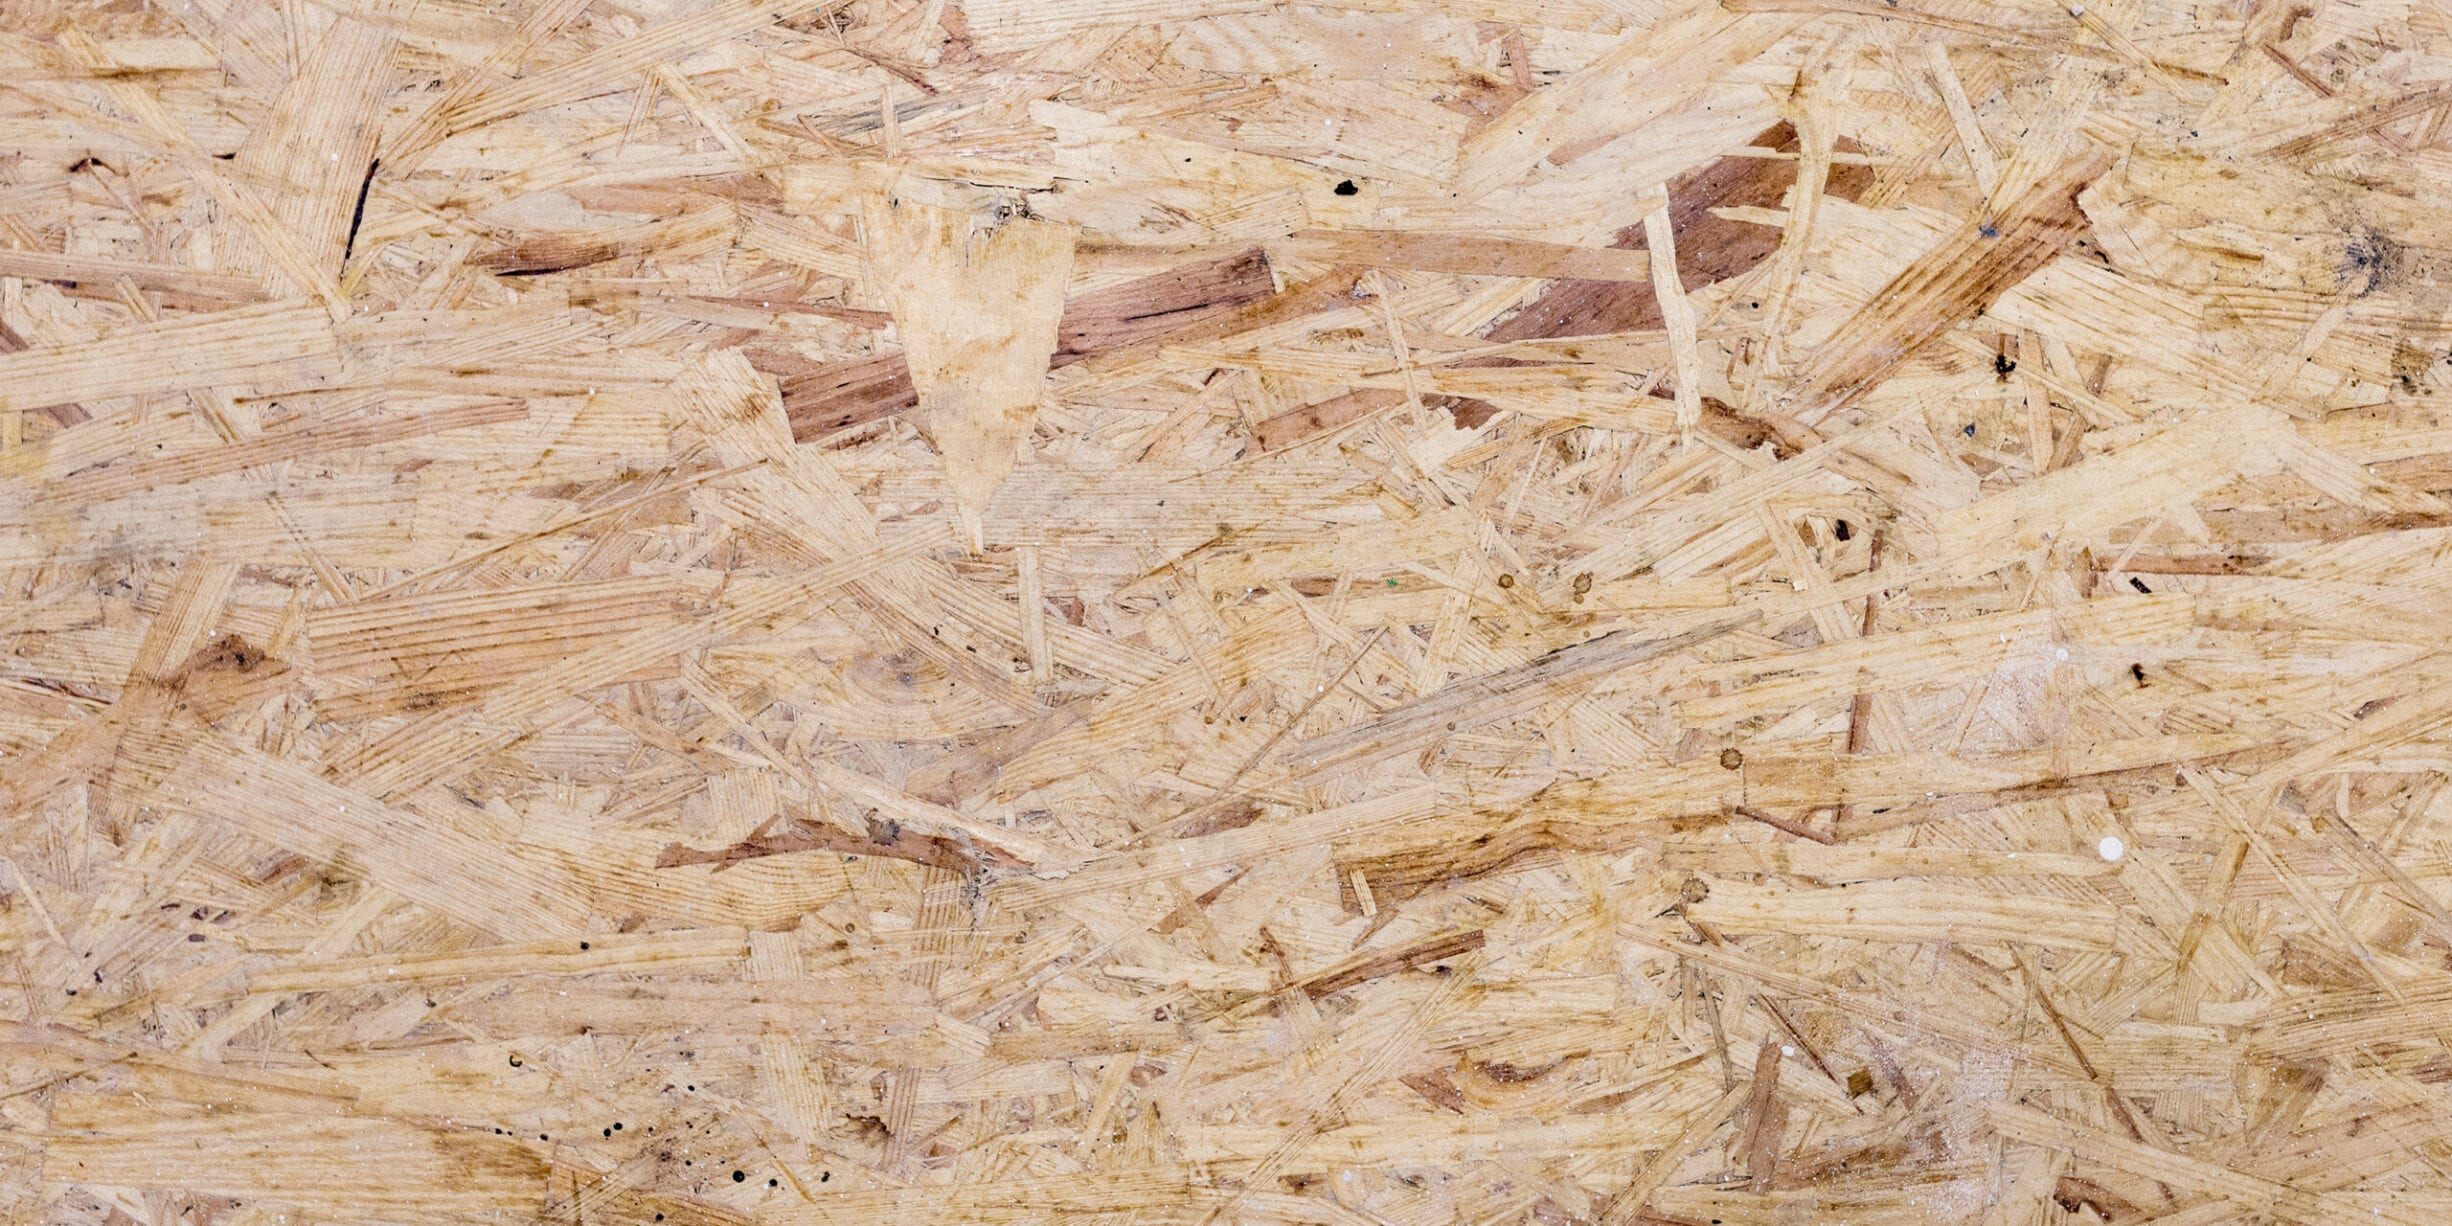 wood chip pile feature image